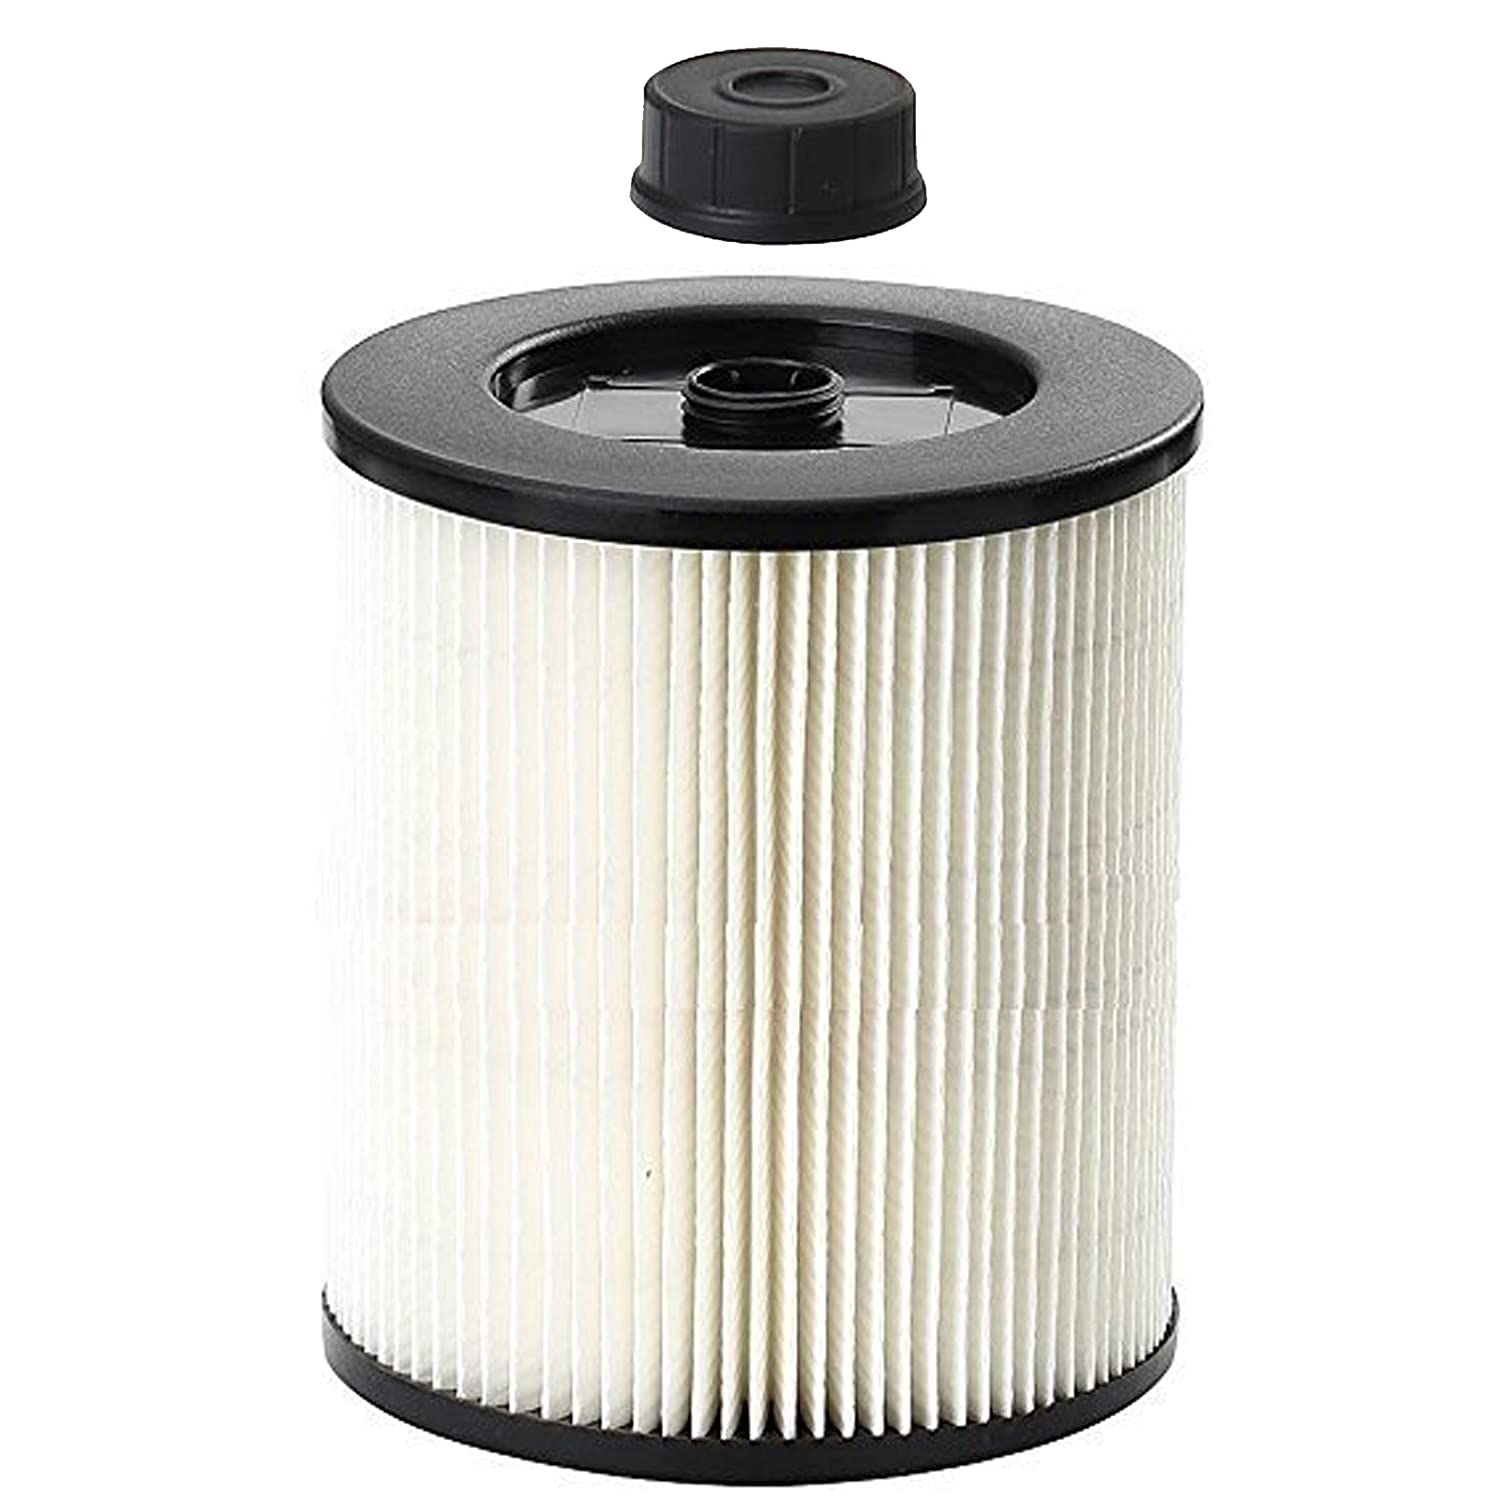 First4Spares Qualtex 9-17816 Filter with Cap Fits All Craftsman Vacuums 5 Gallons & Above